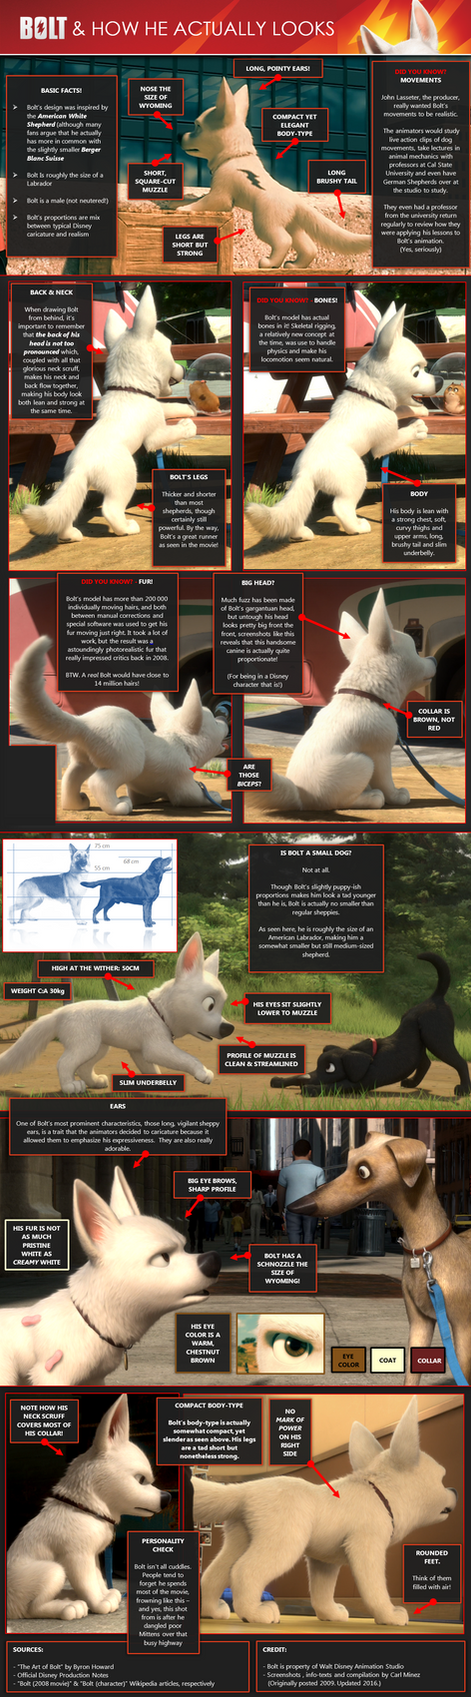 Bolt and how he actually looks (Updated) by CarlMinez